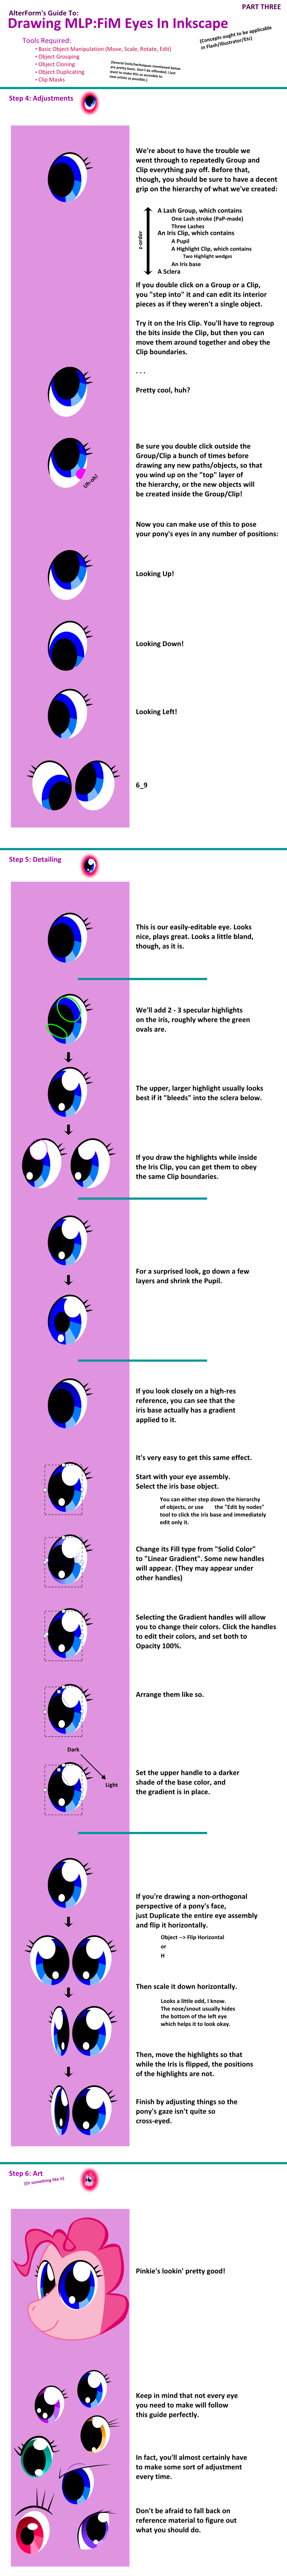 MLP: FiM Eye Tutorial Part 3 by AltrForm